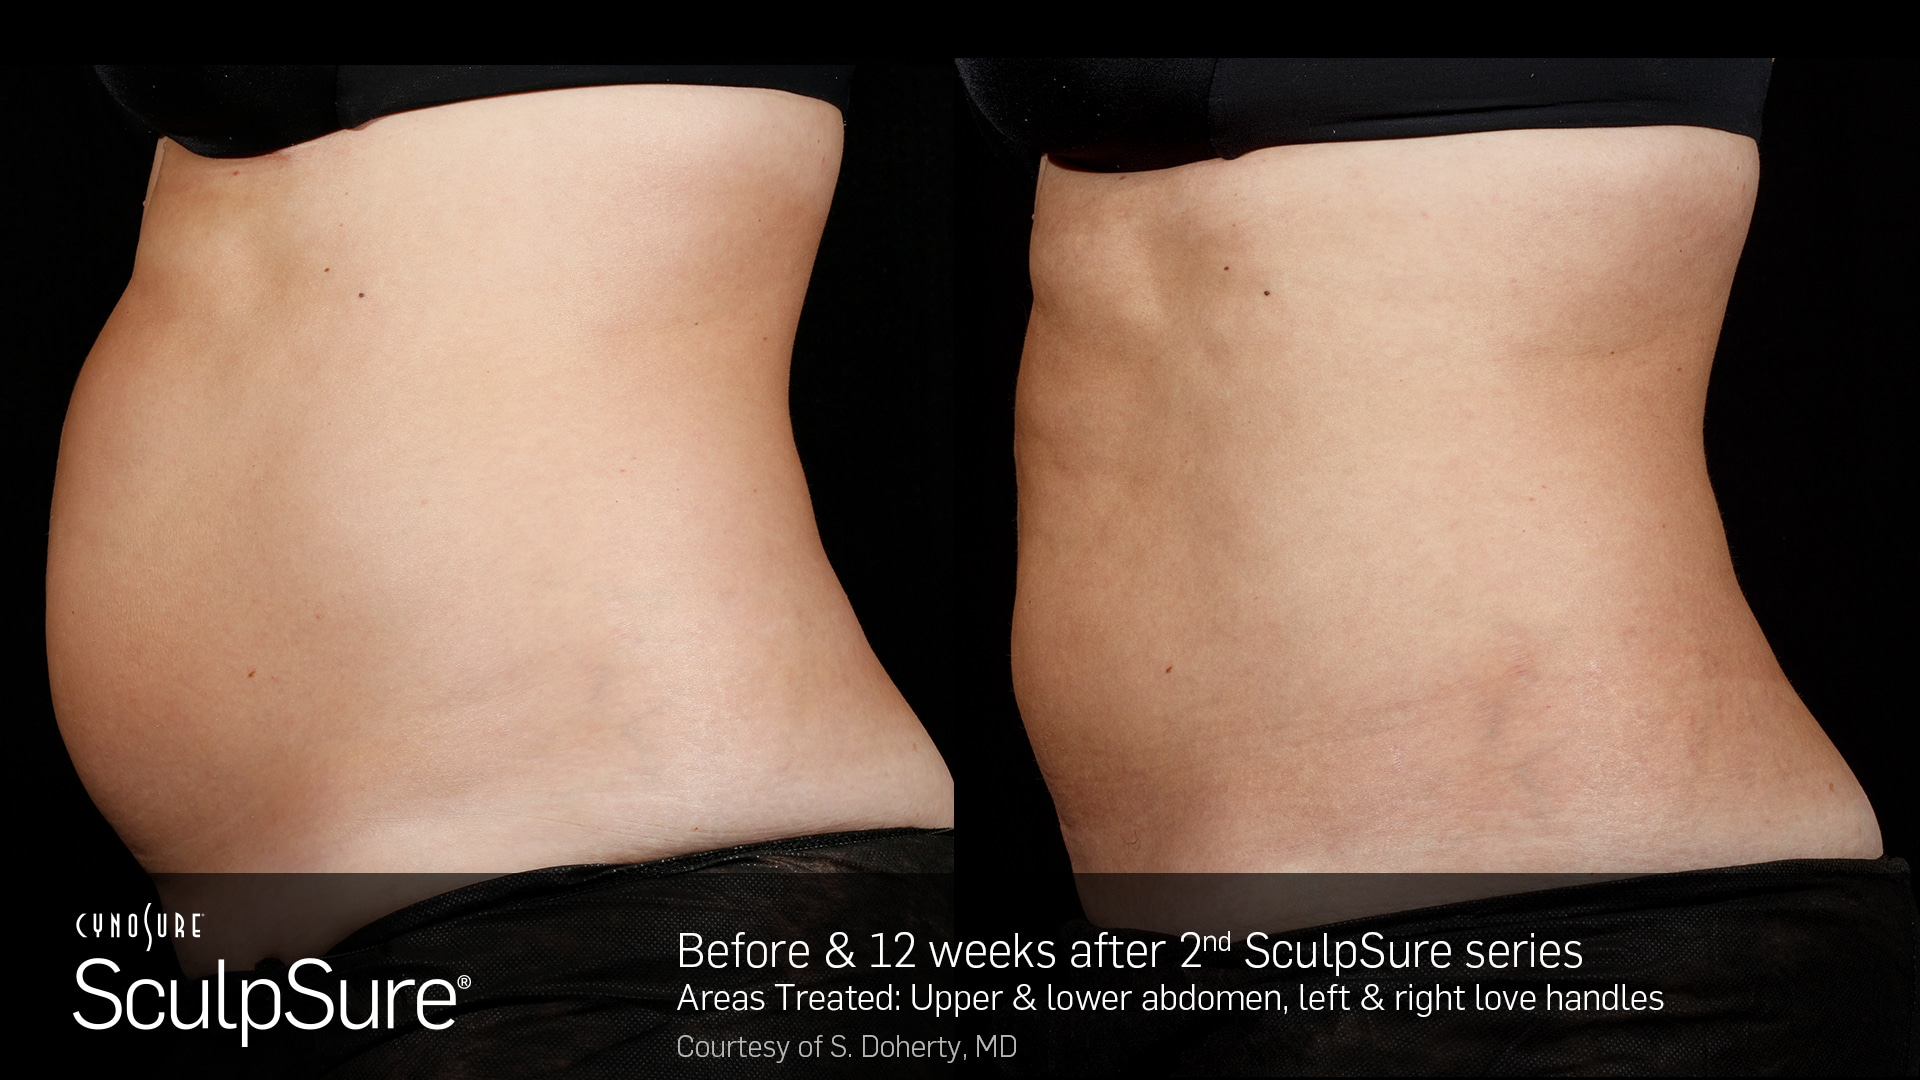 SculpSure Weight Loss Results